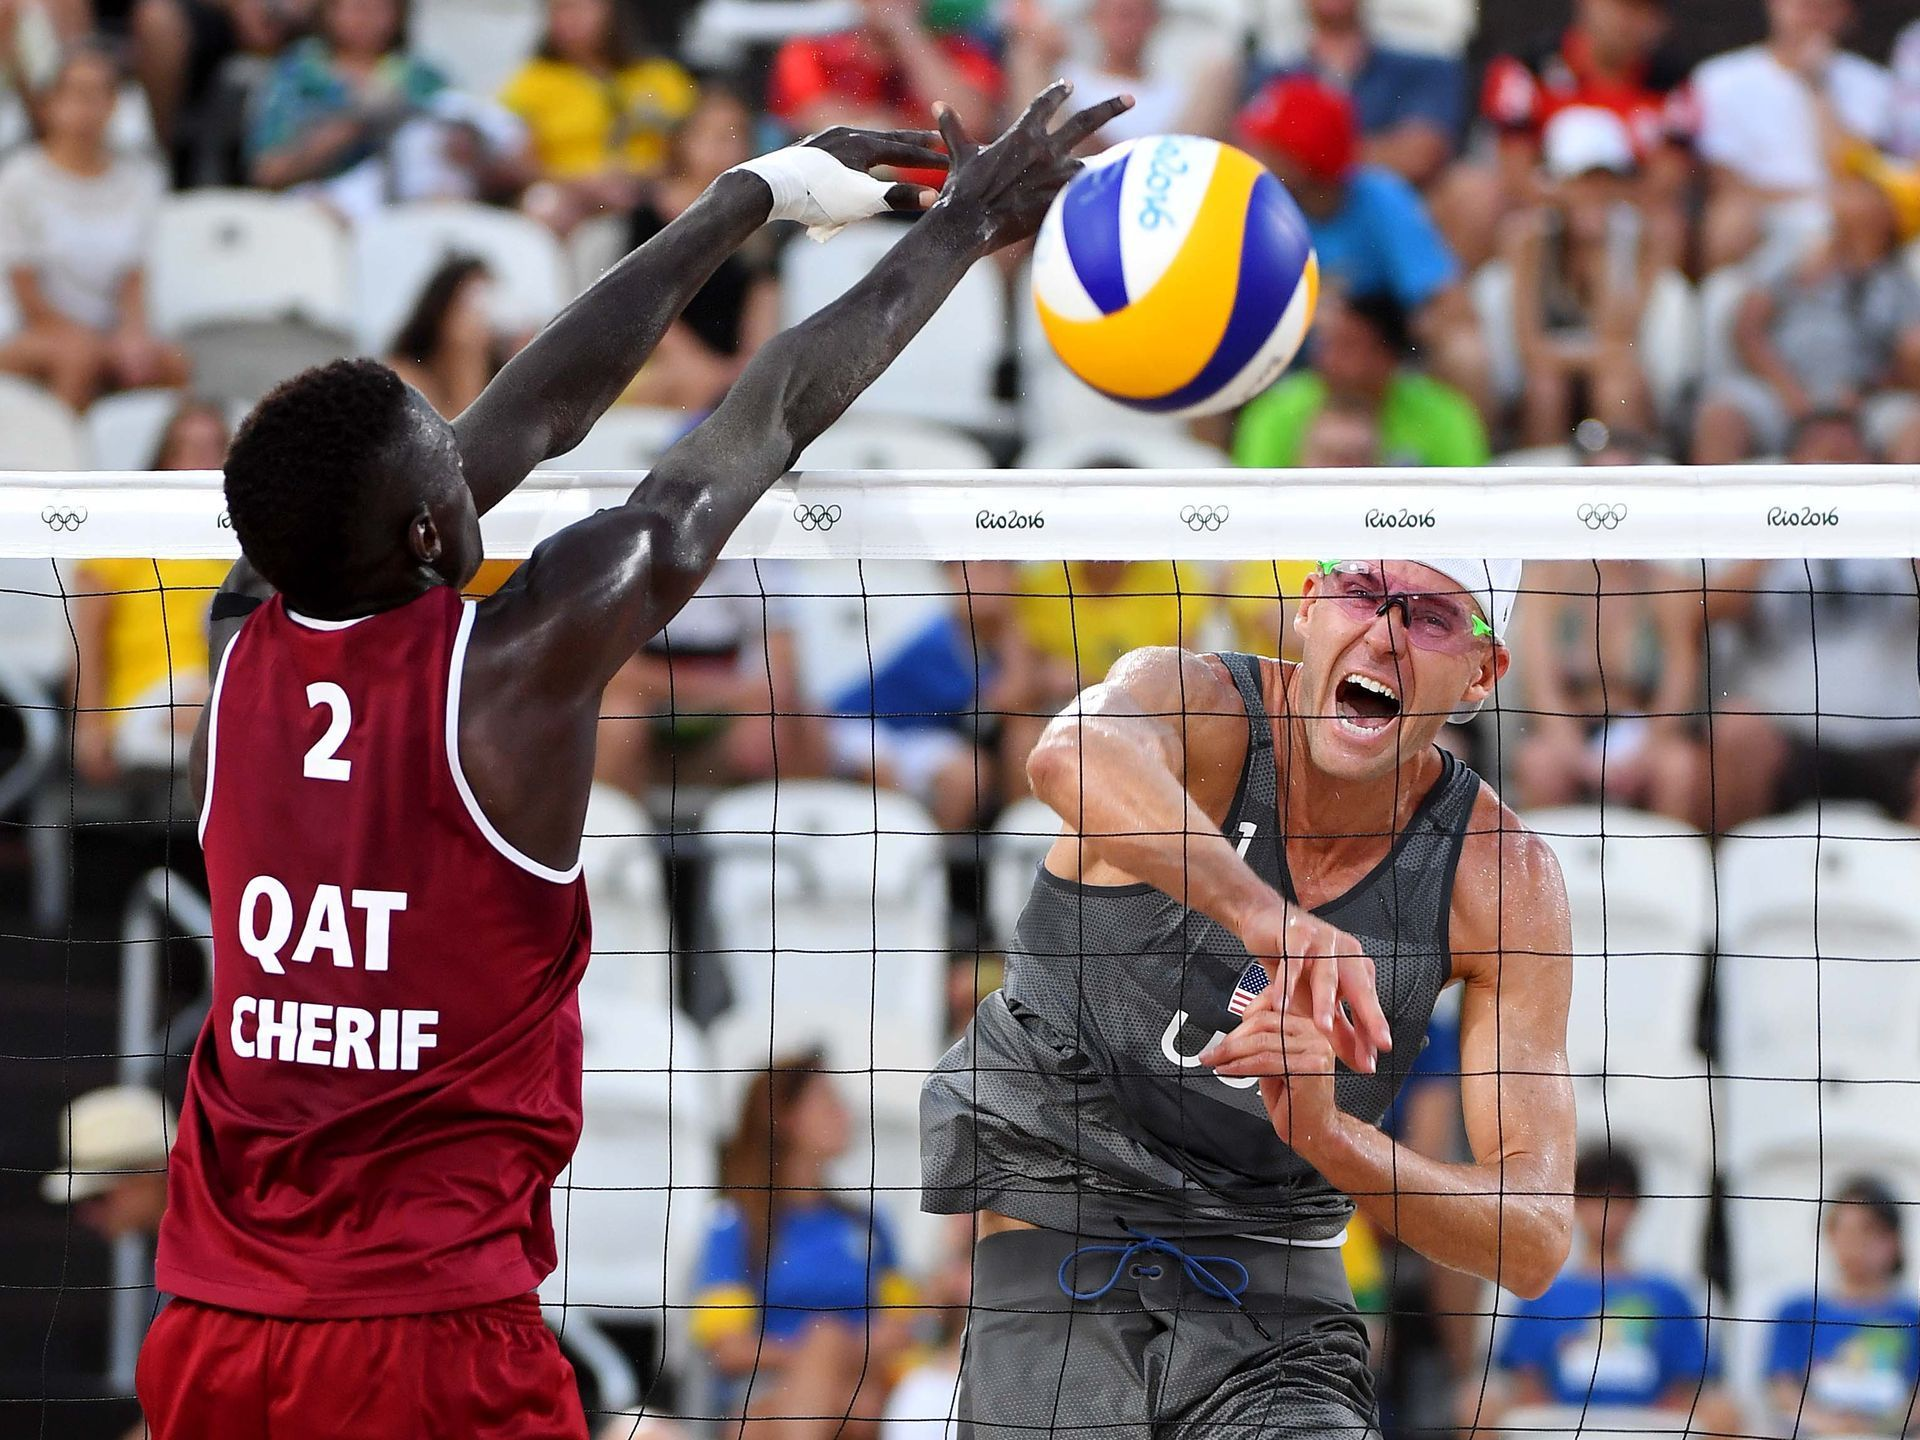 Casey Patterson Usa Hits The Ball Against Cherif Rio Olympics Olympics Summer Olympic Games